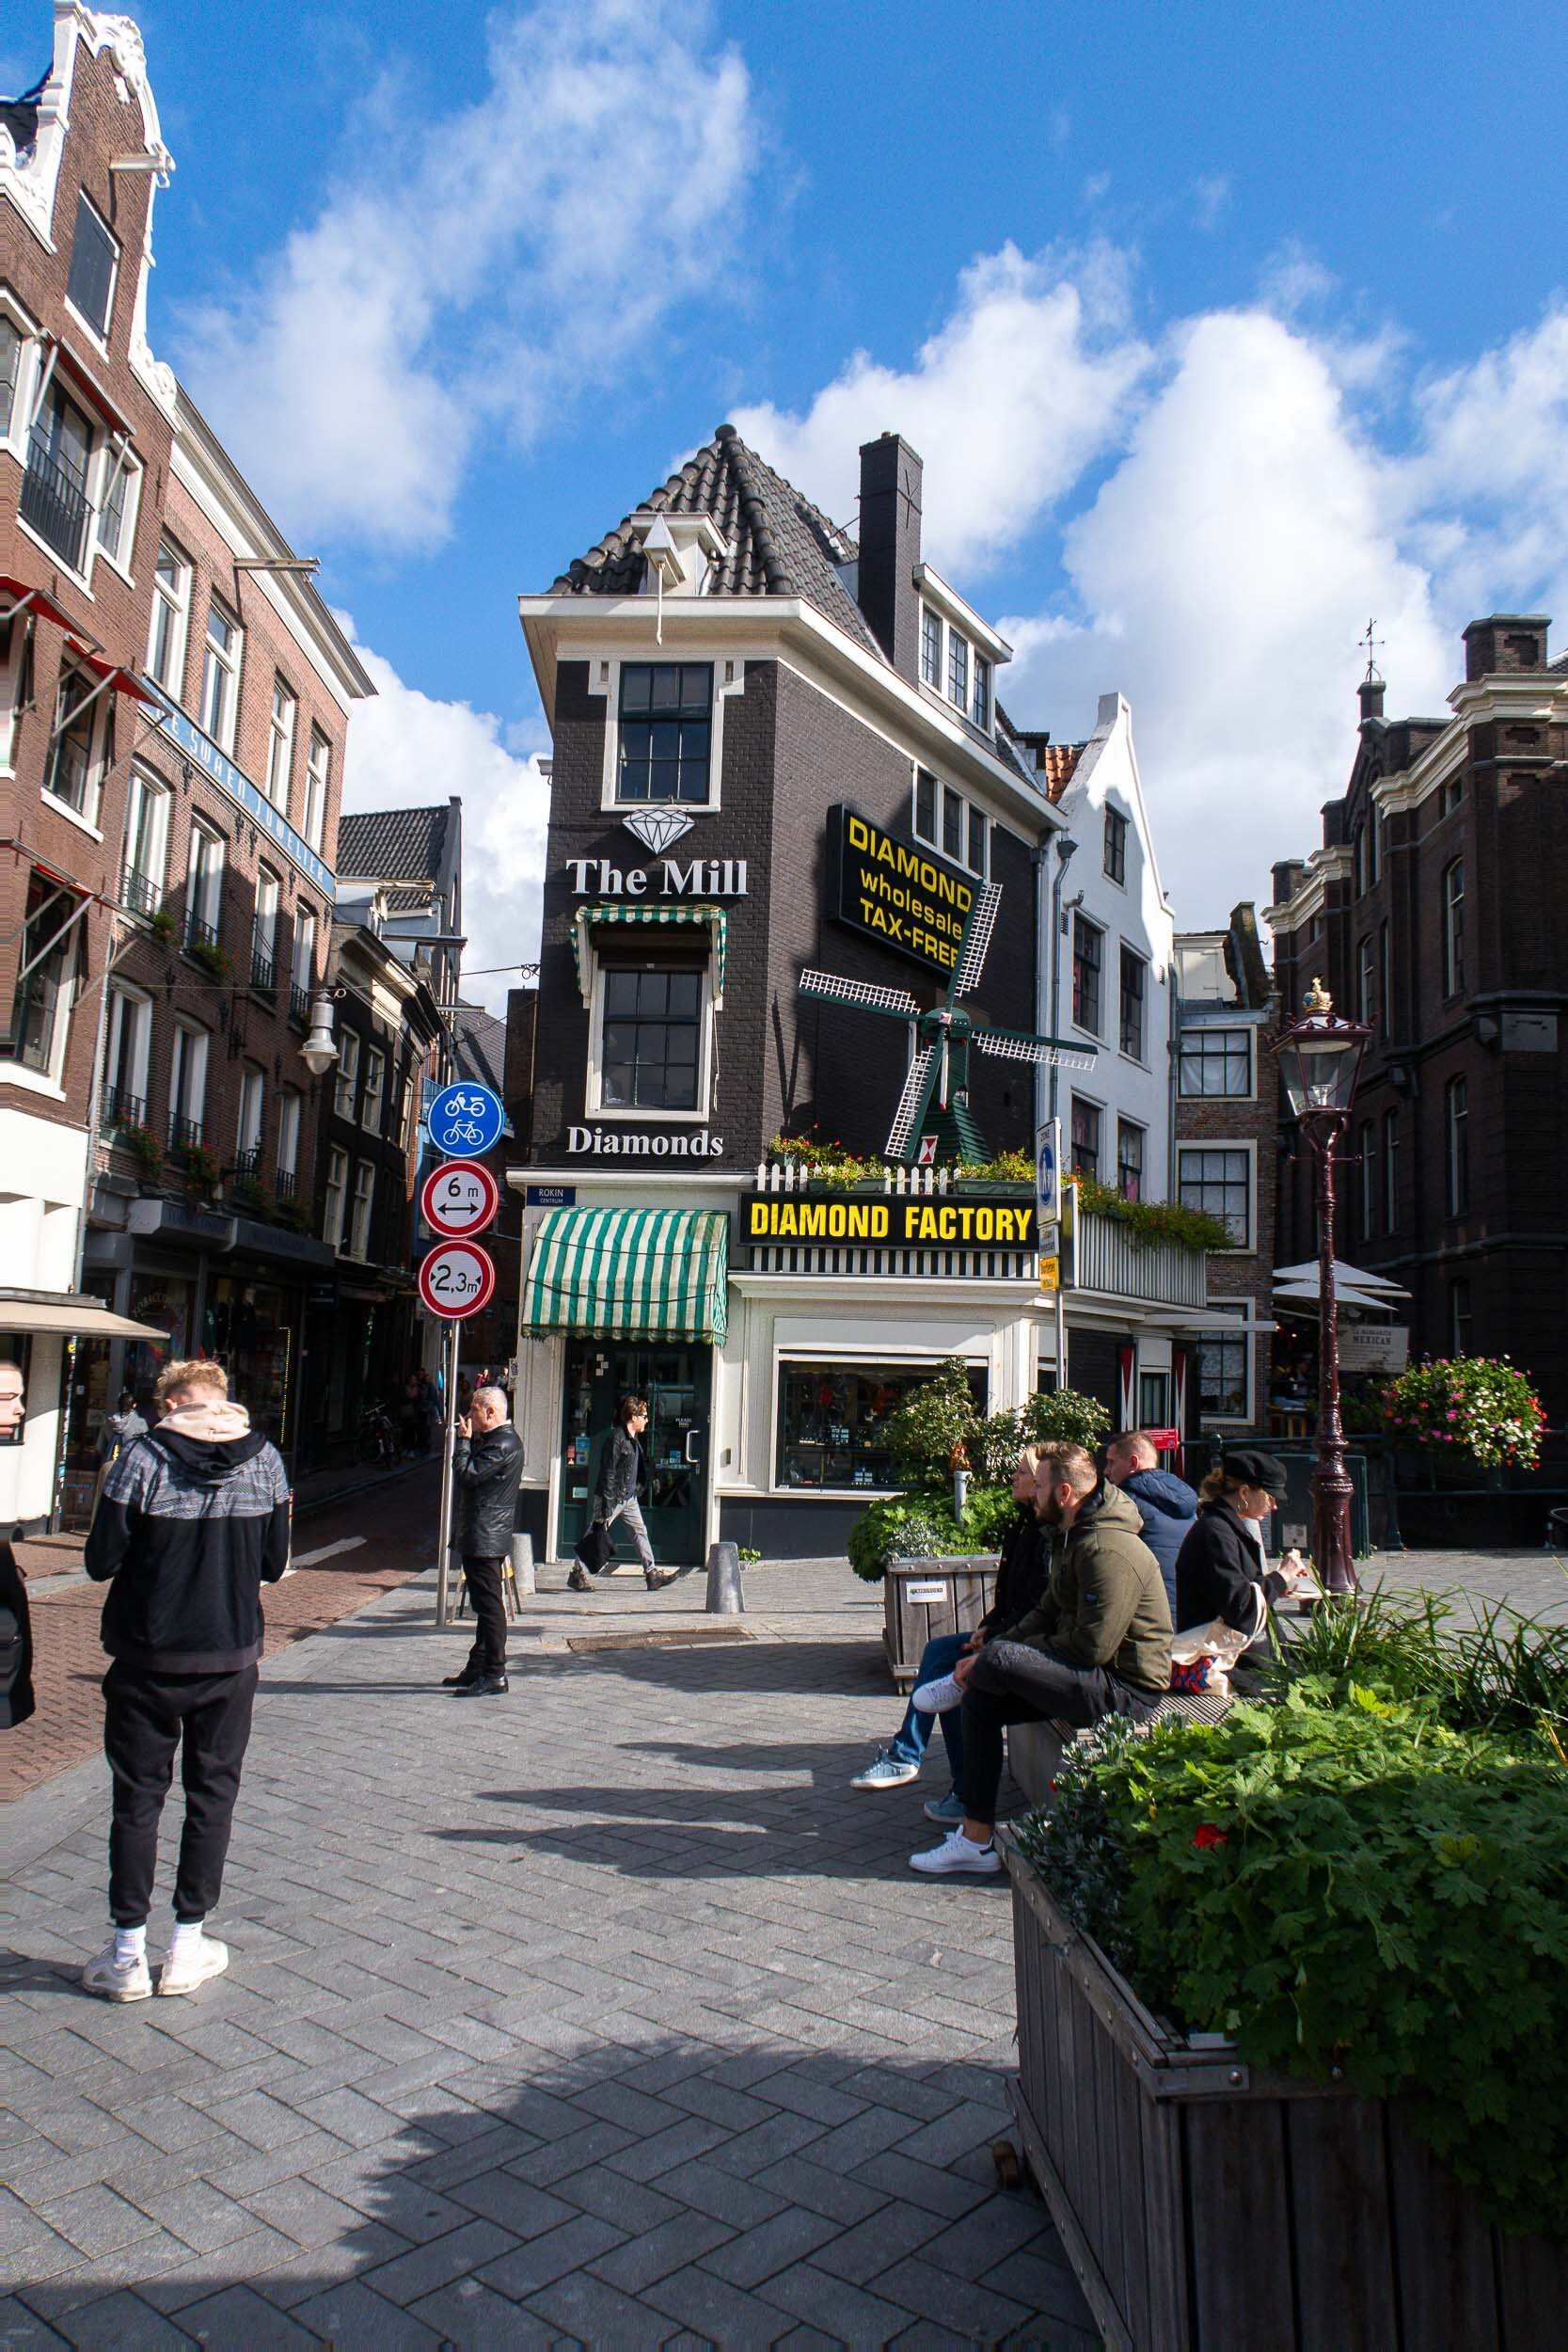 The ULTIMATE travel guide for Amsterdam!